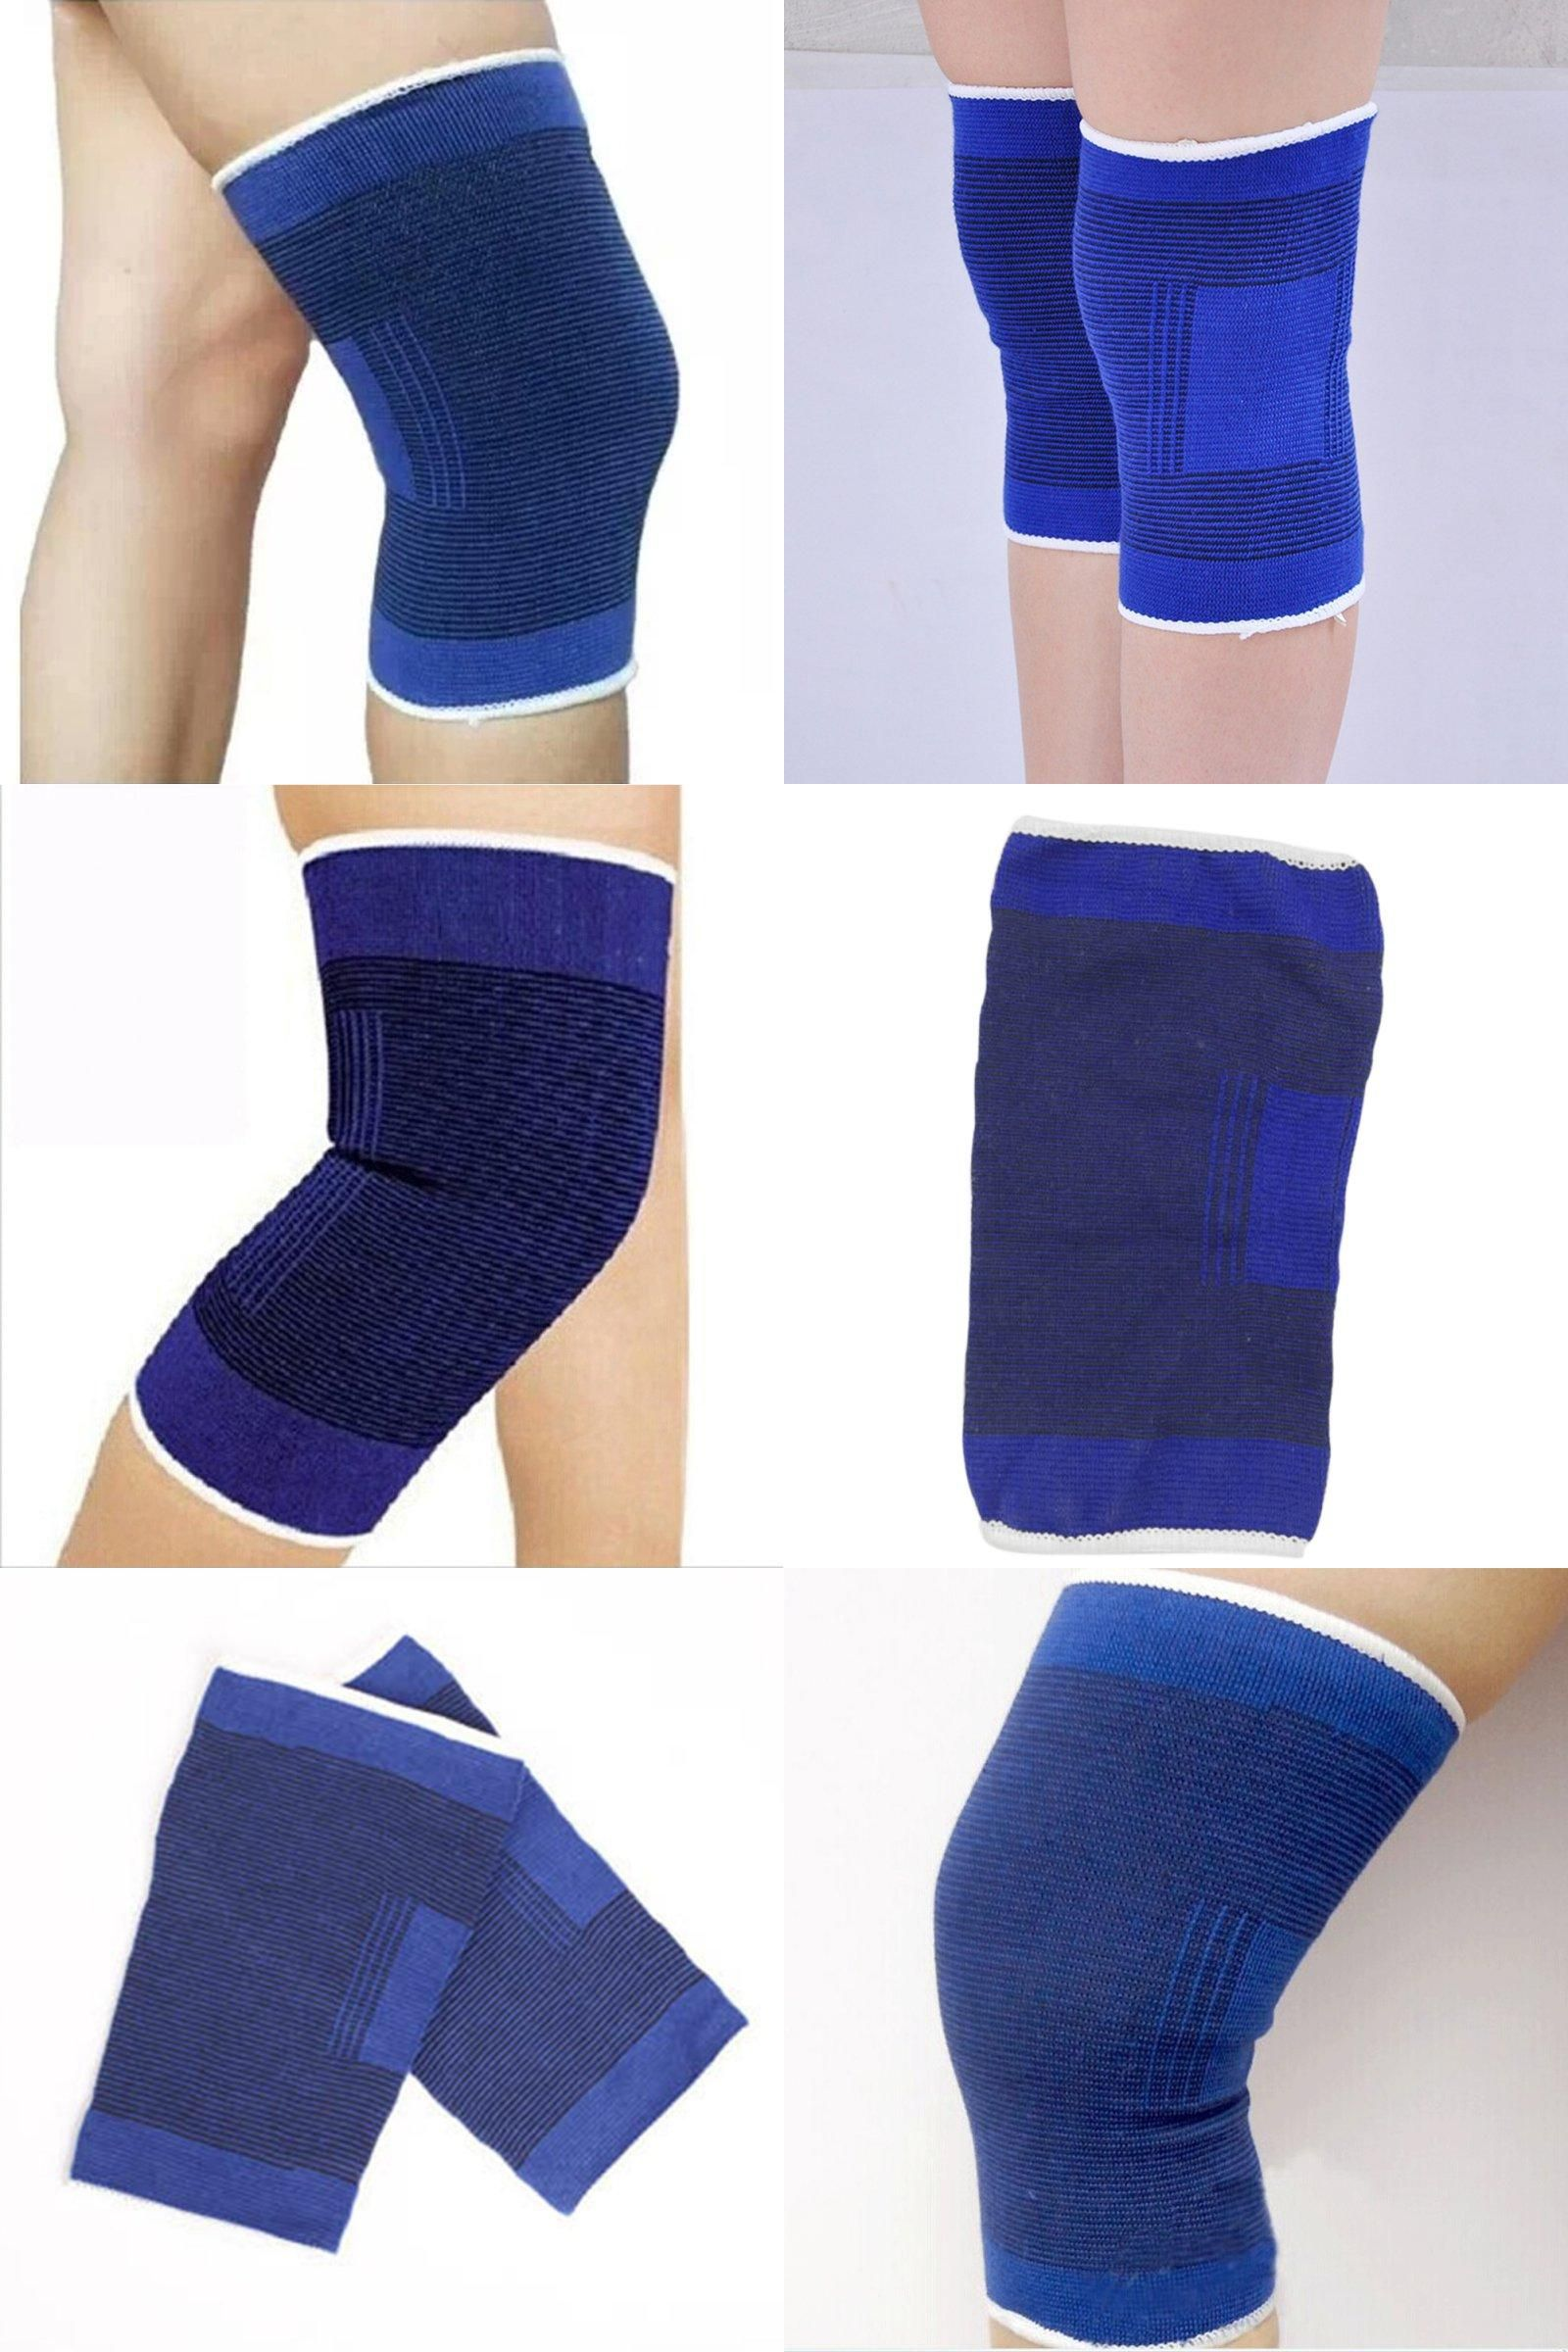 Visit To Buy Sports Safety Knee Brace Pads Volleyball Dance Joints Muscles Support Elastic Elbow Guard Protector Kneepads Sports Safety Knee Brace Supportive